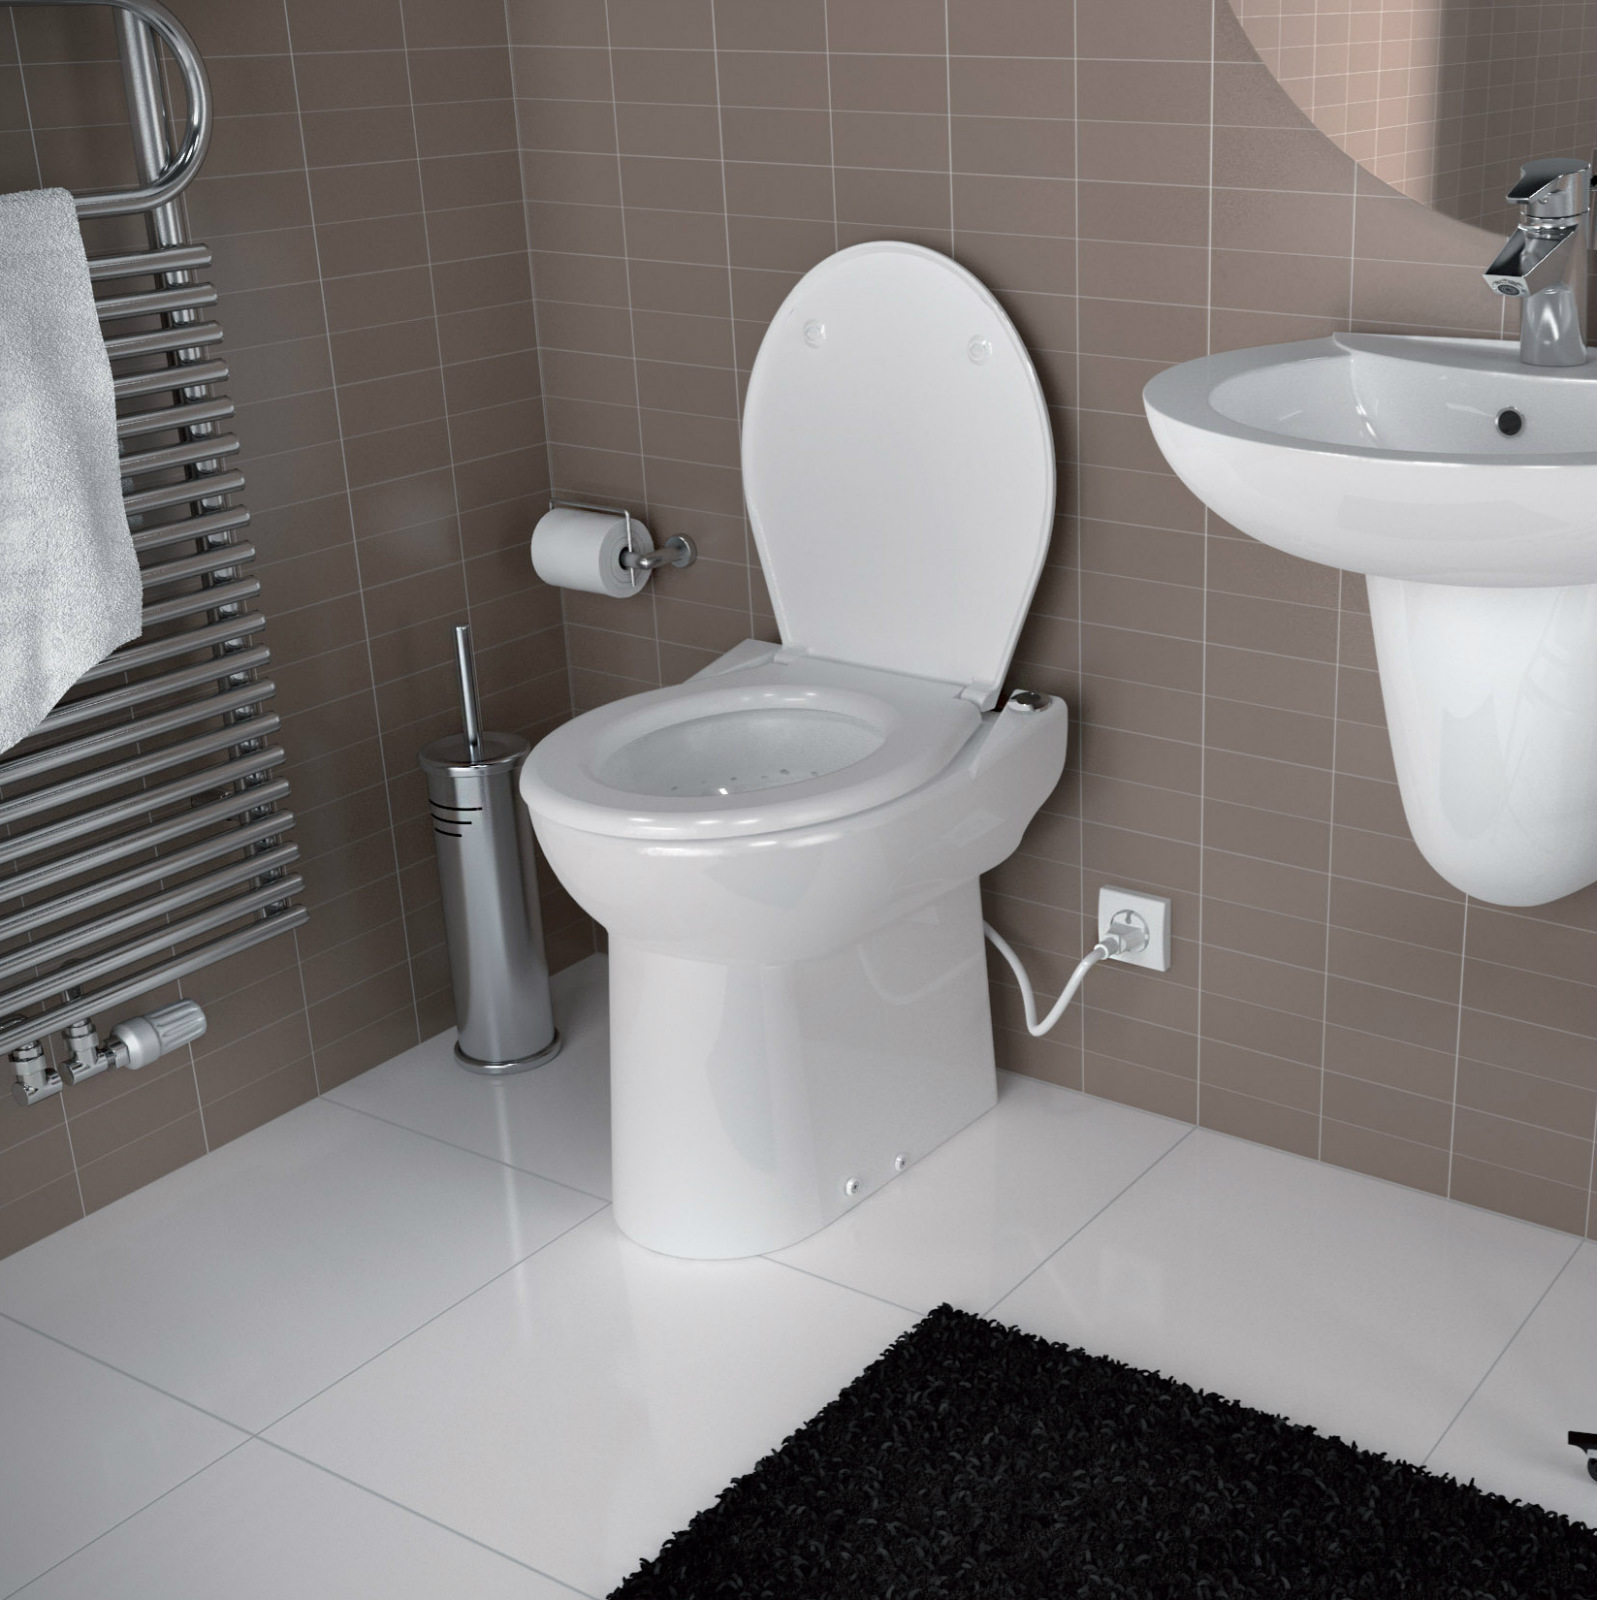 Upflush | How to Install A Saniflo Upflush Toilet | Saniflo